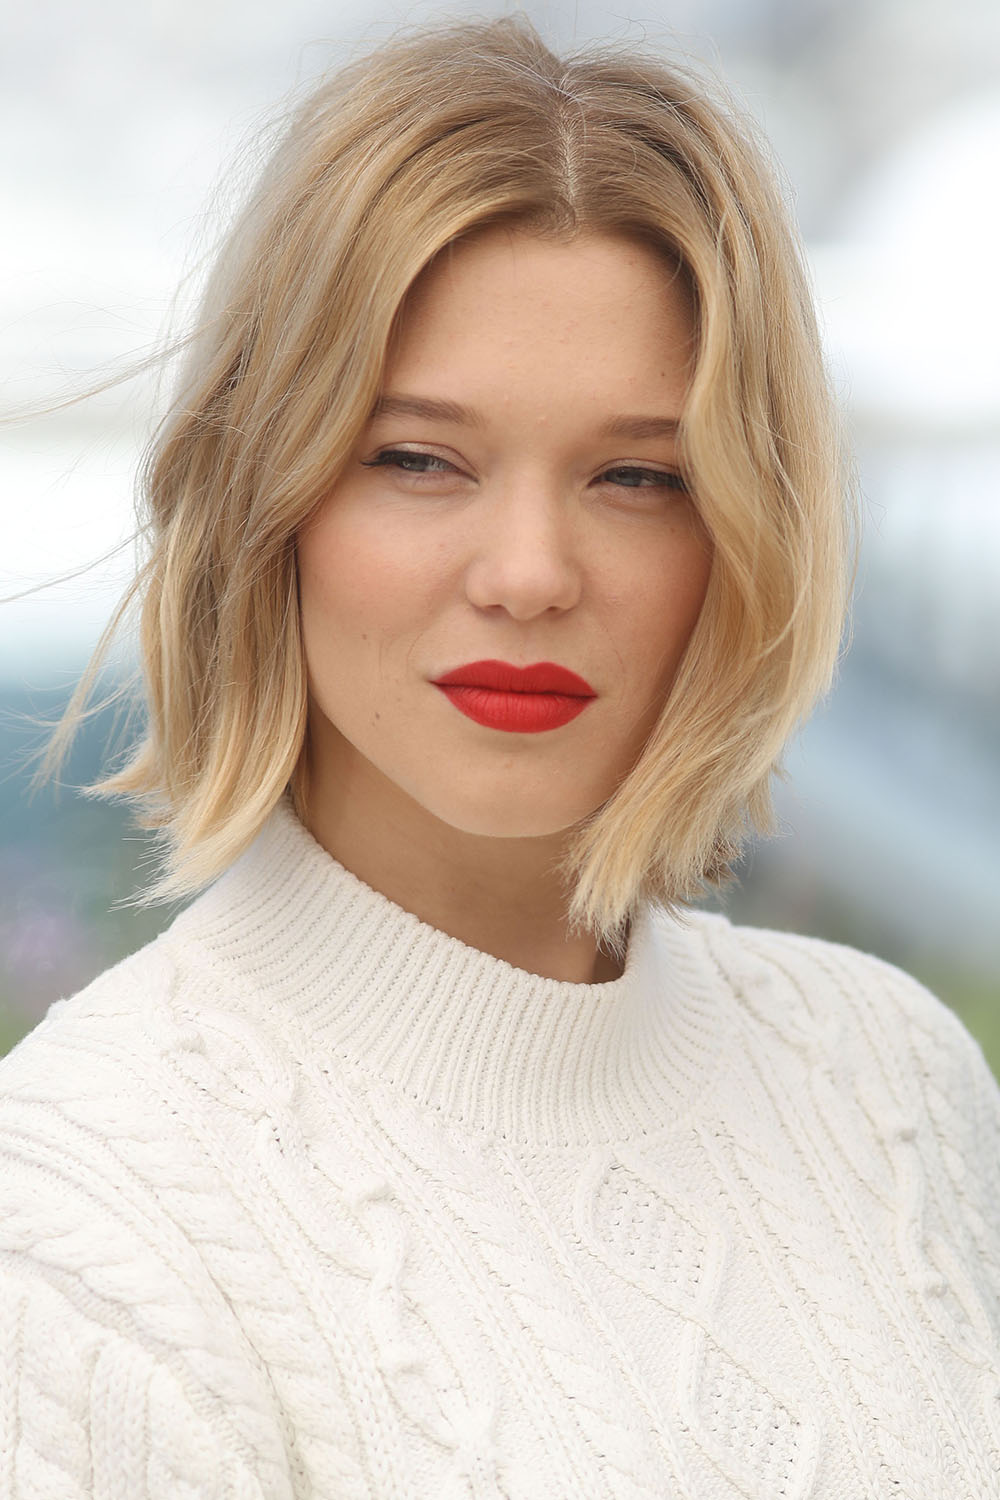 Sensational 37 Cute Bob And Lob Haircuts 2017 Best Celebrity Long Bob Hairstyles Hairstyle Inspiration Daily Dogsangcom